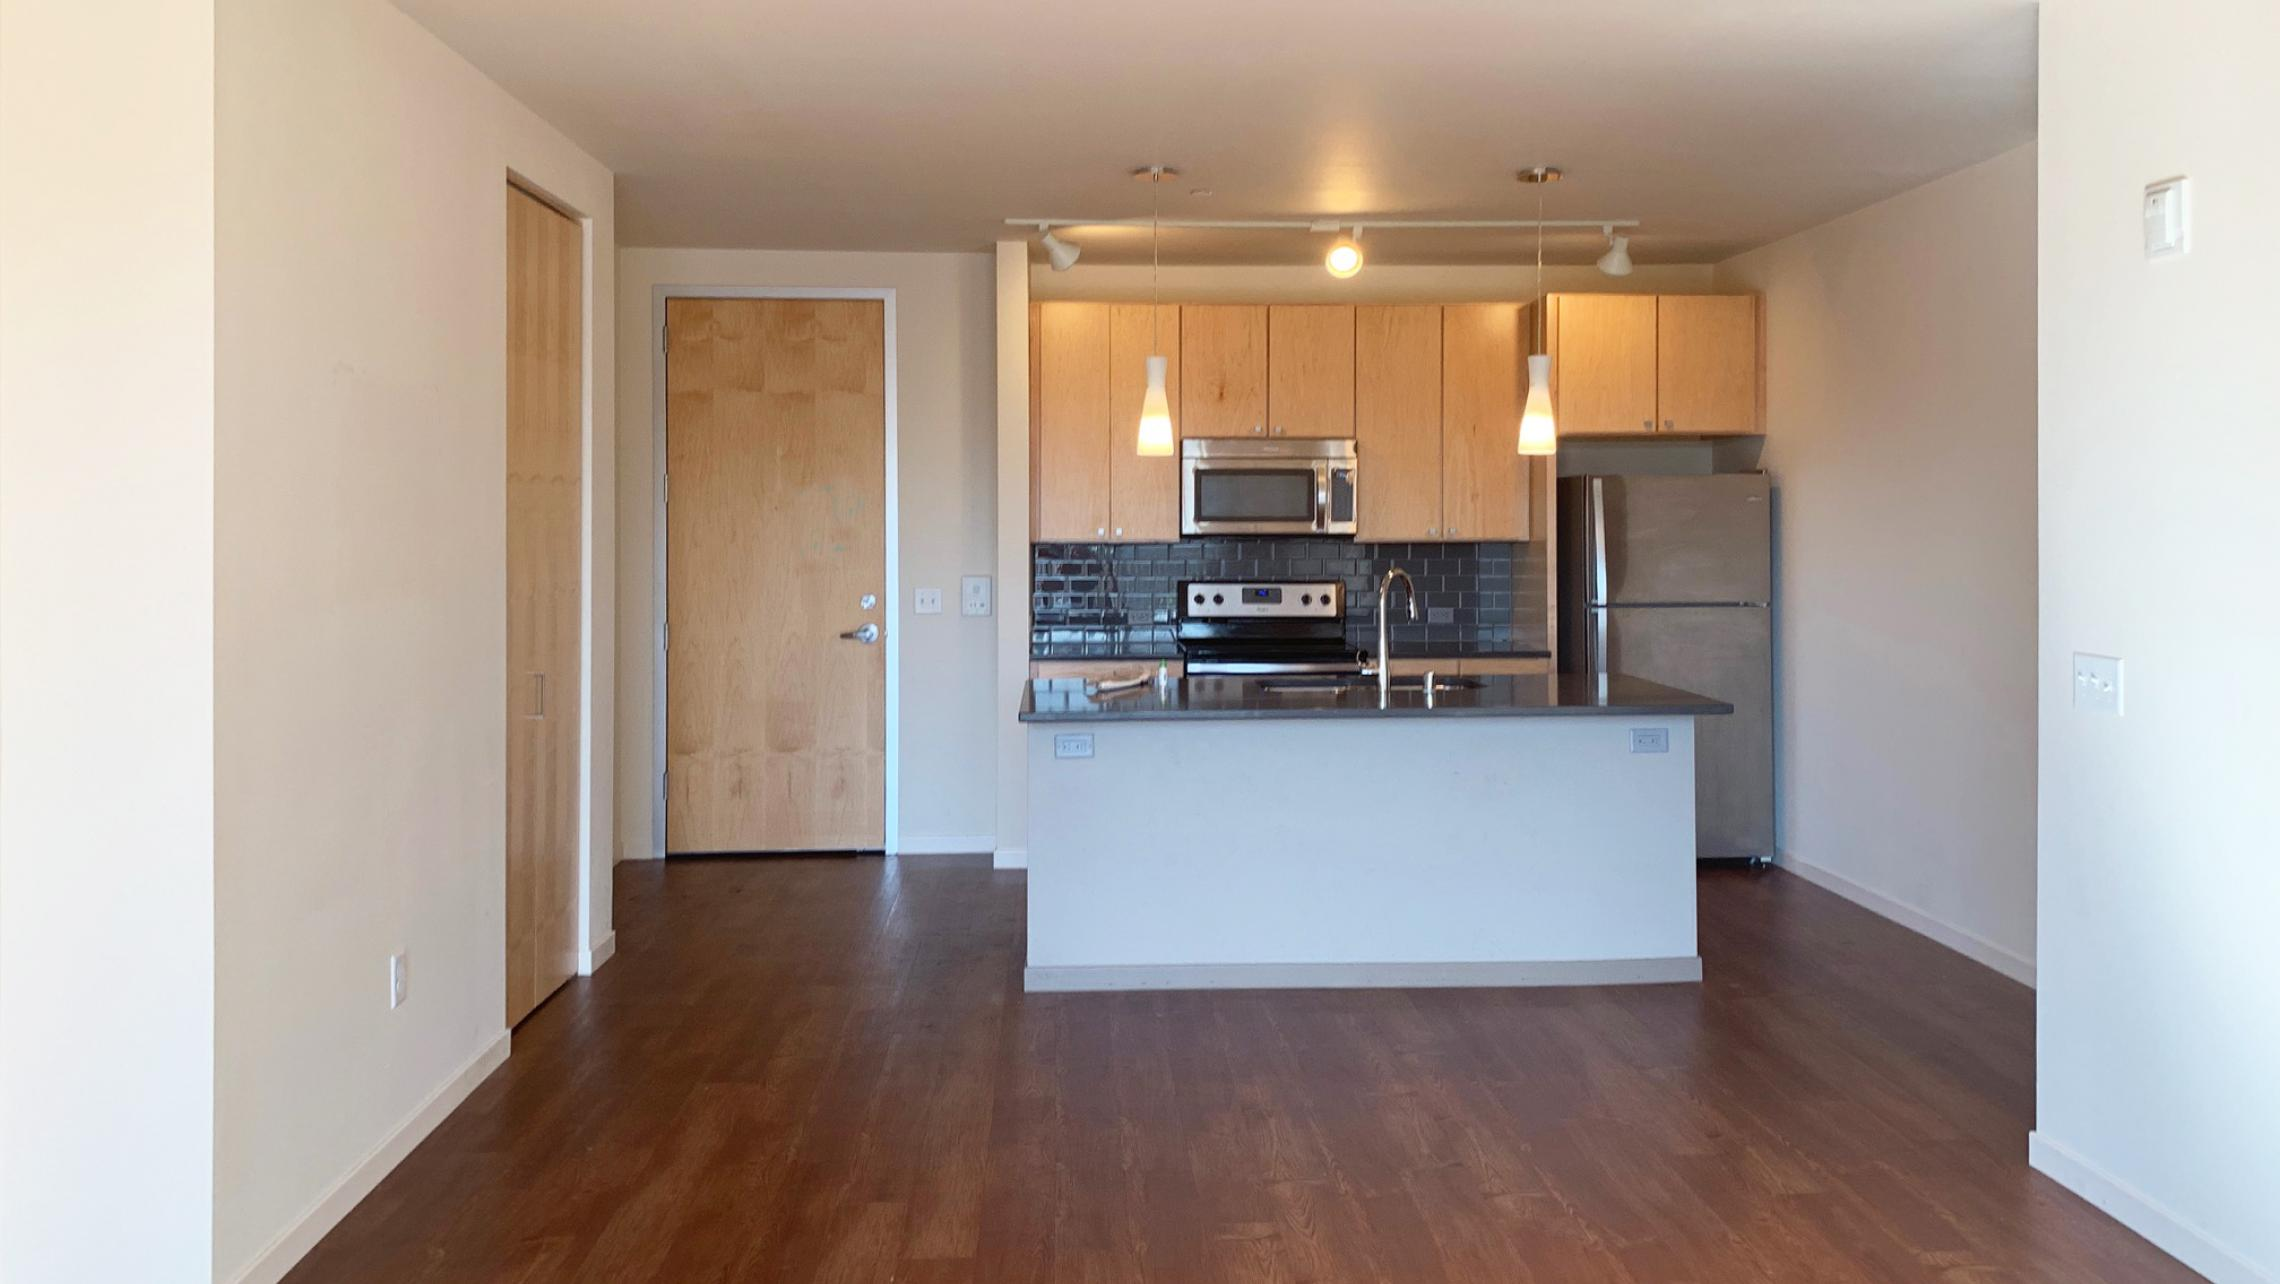 Nine-Line-at-The-Yards-Apartmetn-315-Two-Bedroom-Livng-Kitchen-Bathroom-Balcony-Lake-View-Modern-Upscale-Luxury-Fitness-Gym-Pets-Bike-Path-Downtown-Madison